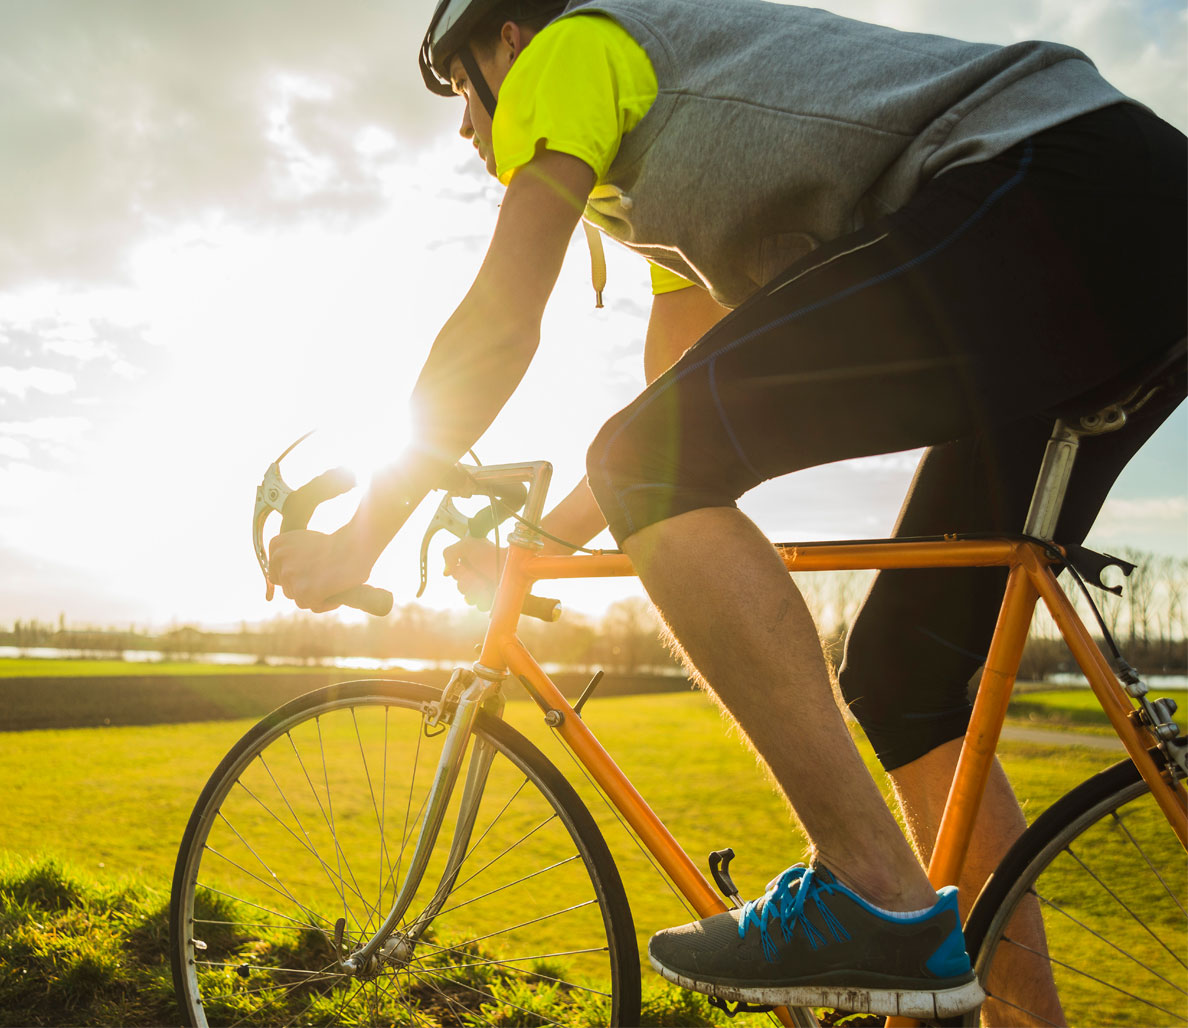 5 Exercises To Build A Better Body For Cycling